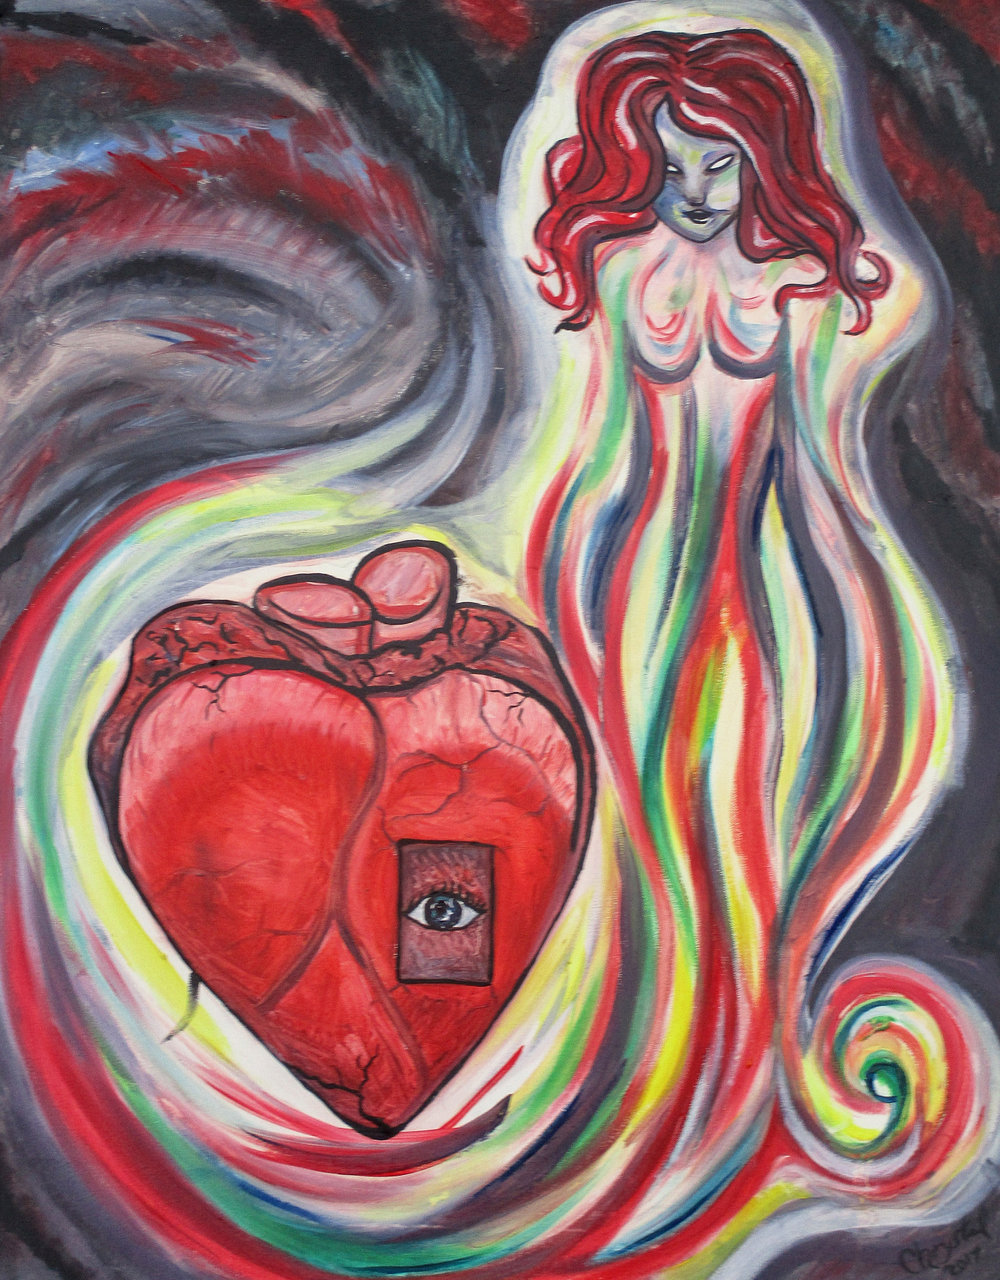 'Doorway Into my Soul' by Chrystal Robinson-Shofroth.   [Image Description: A portrait of the artist as a woman in bright red. Her body dissolves into a multicolored flowing aura, which curls around the page and surrounds her heart. The heart itself is a hybrid of the traditional symbolic heart shape and an anatomically correct organ, as if to represent a dual symbolism of emotion and physical body. A doorway opens in the surface of the heart and an eye pears out. Chaotic darkness overwhelms the edges of the image, pressing against the shadow-blurred edges of the figure and the heart, like the floating tunnel vision of an on-coming stroke.]